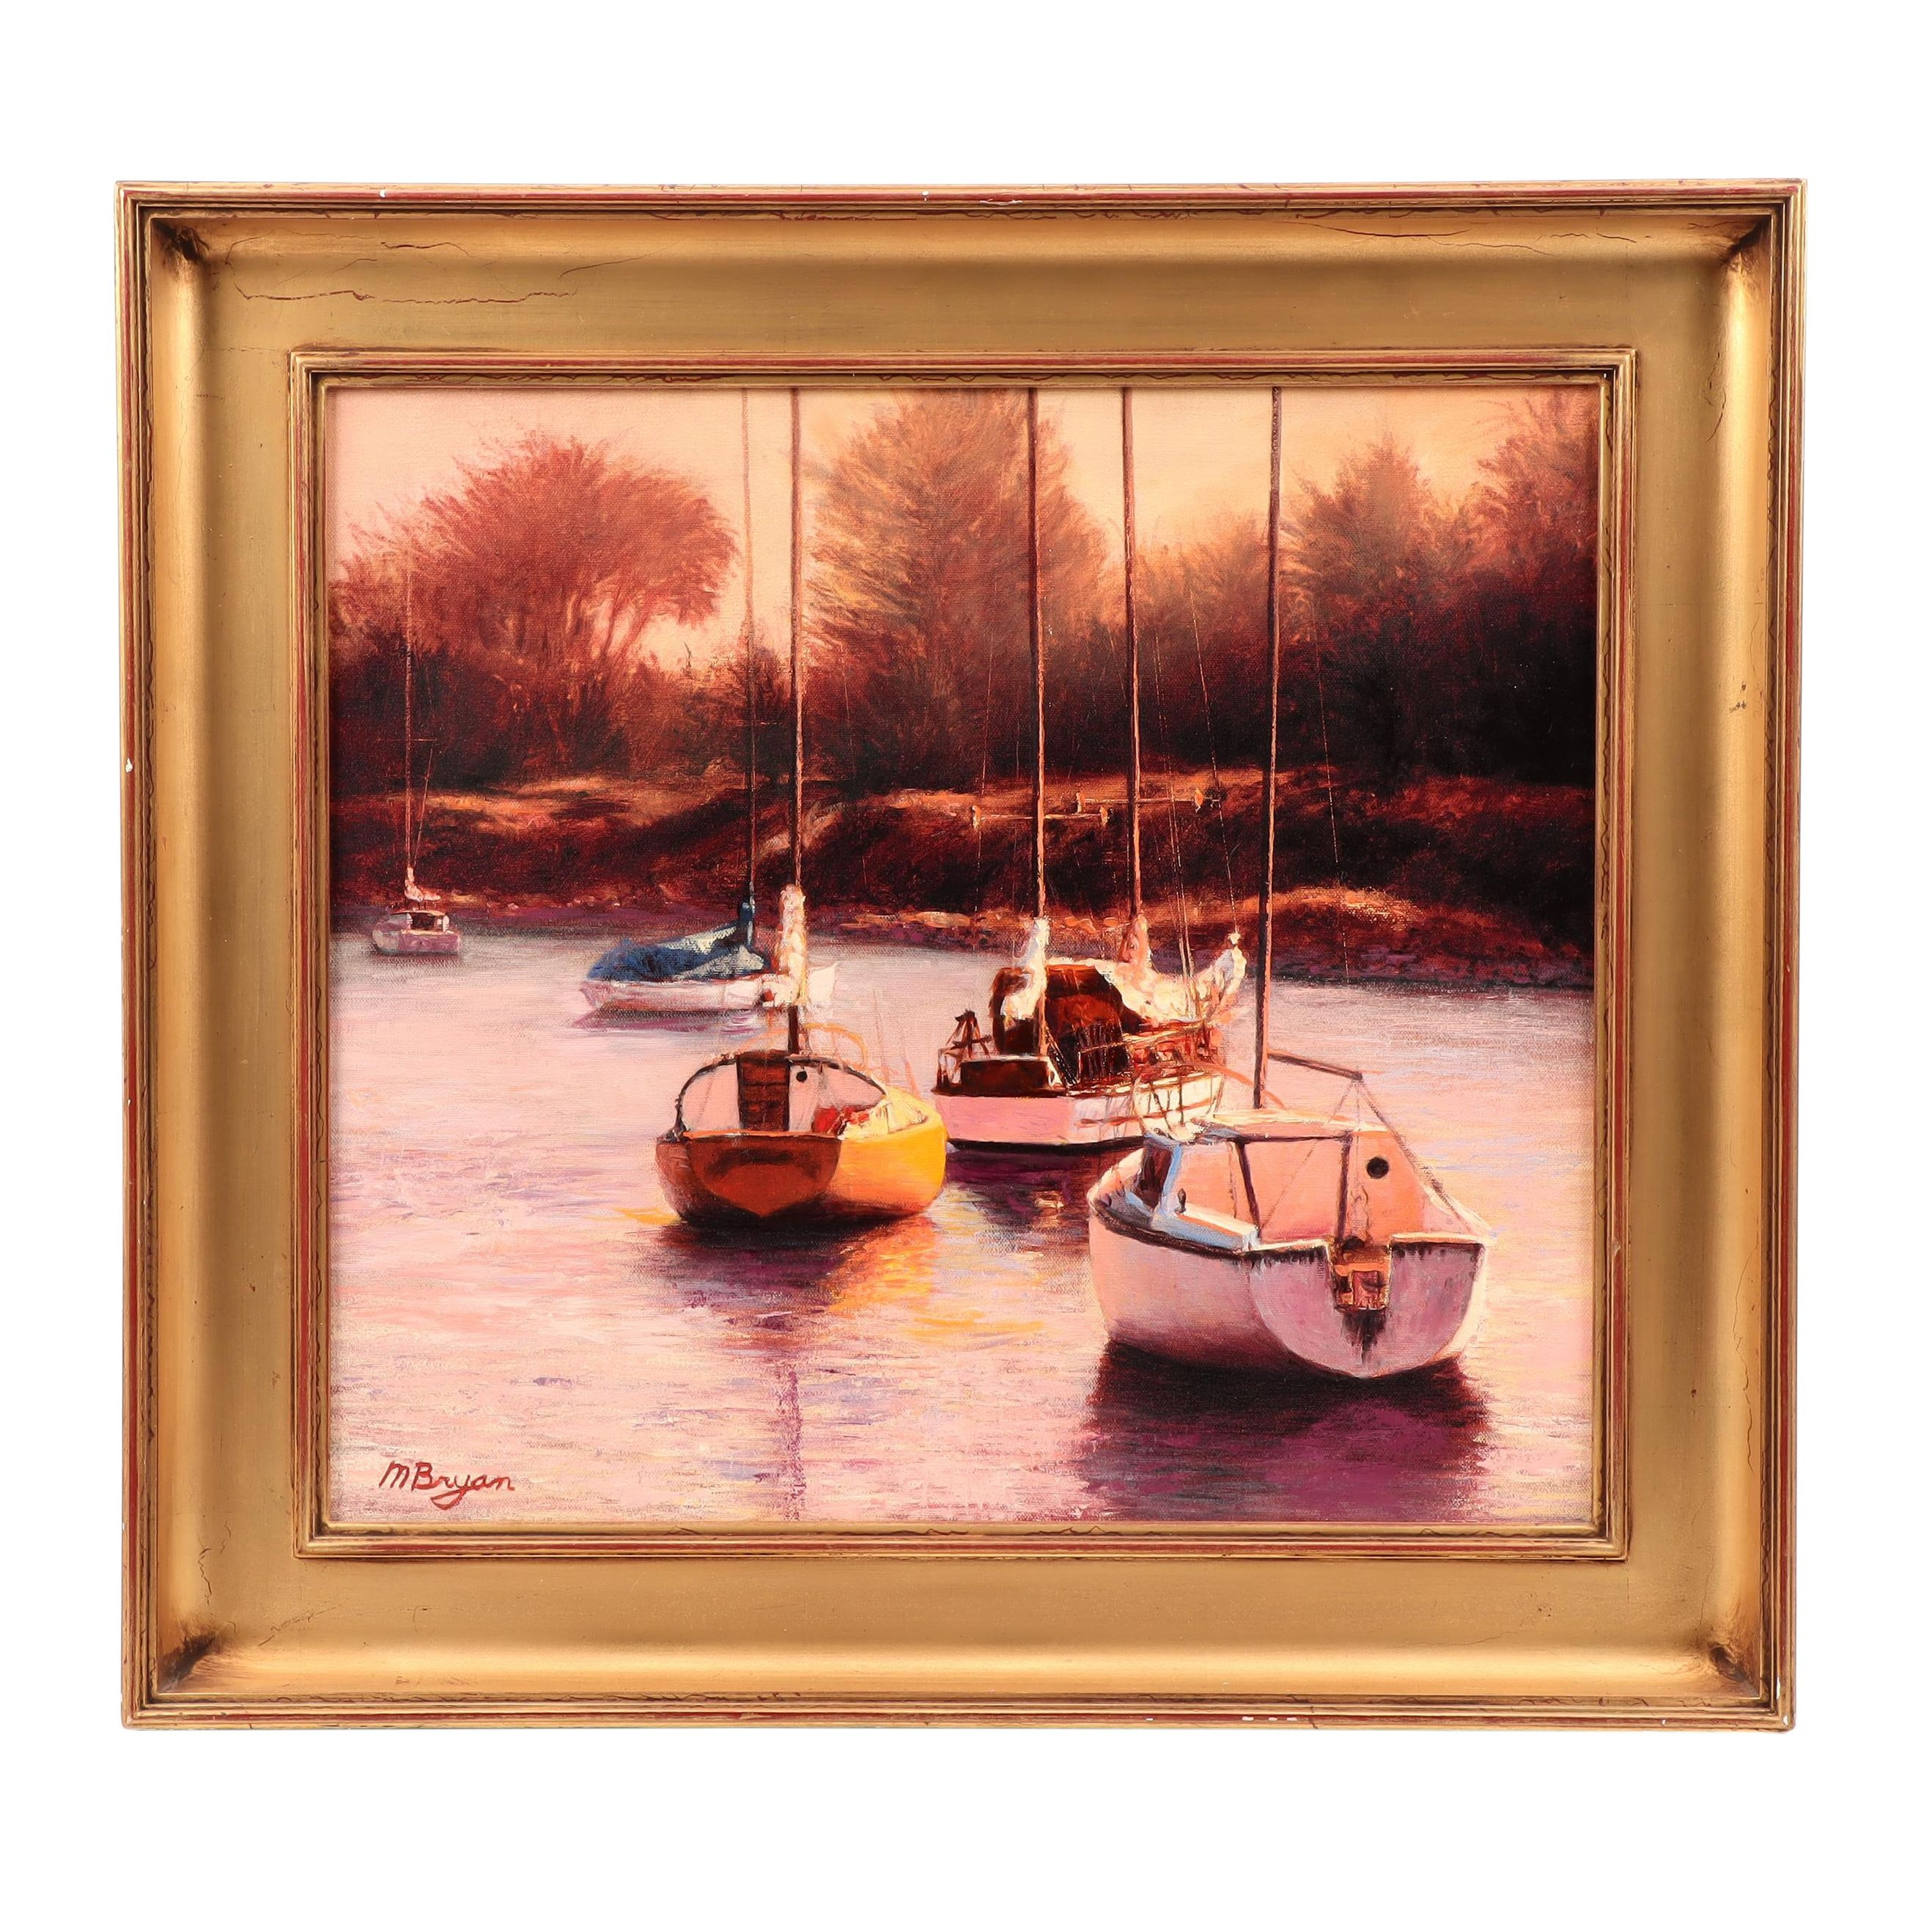 M. Bryan Oil Painting of Sailboats in Harbor